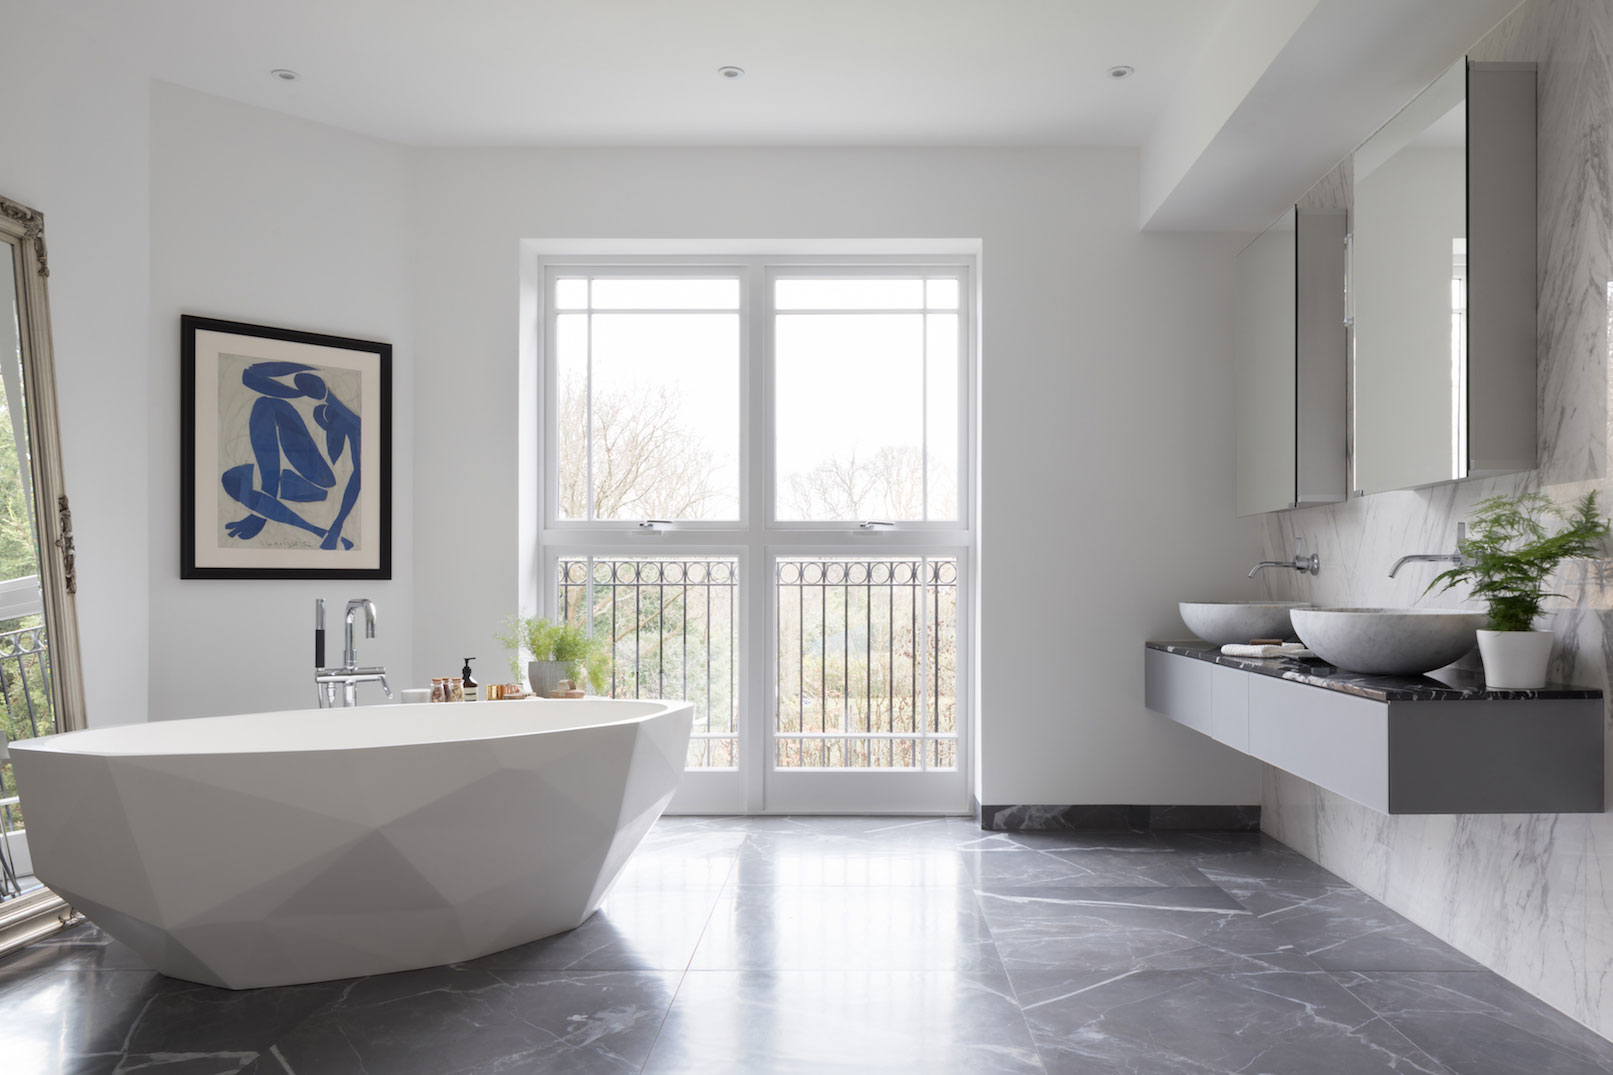 West One Bathrooms – Full overview – Oxshott house